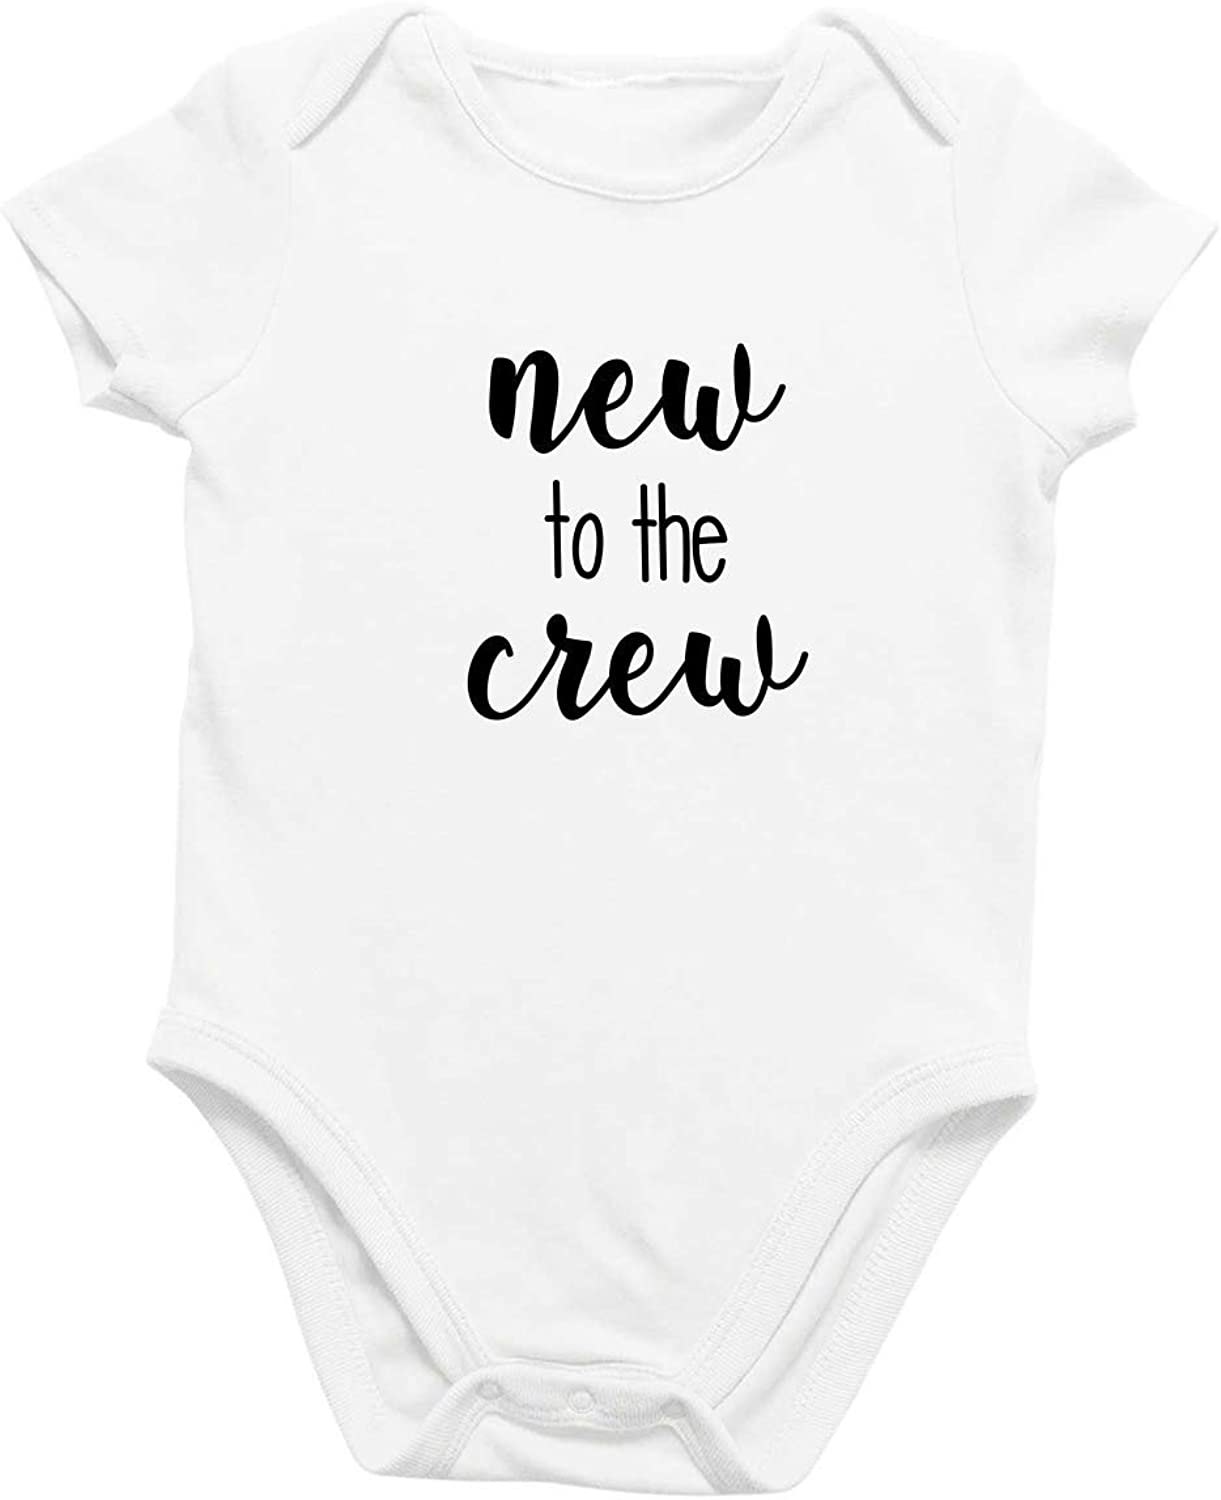 Onesie Organic Baby One Piece Short Sleeve Cute Funny Trendy Minimal Bodysuit 0-12 Months - New To The Crew